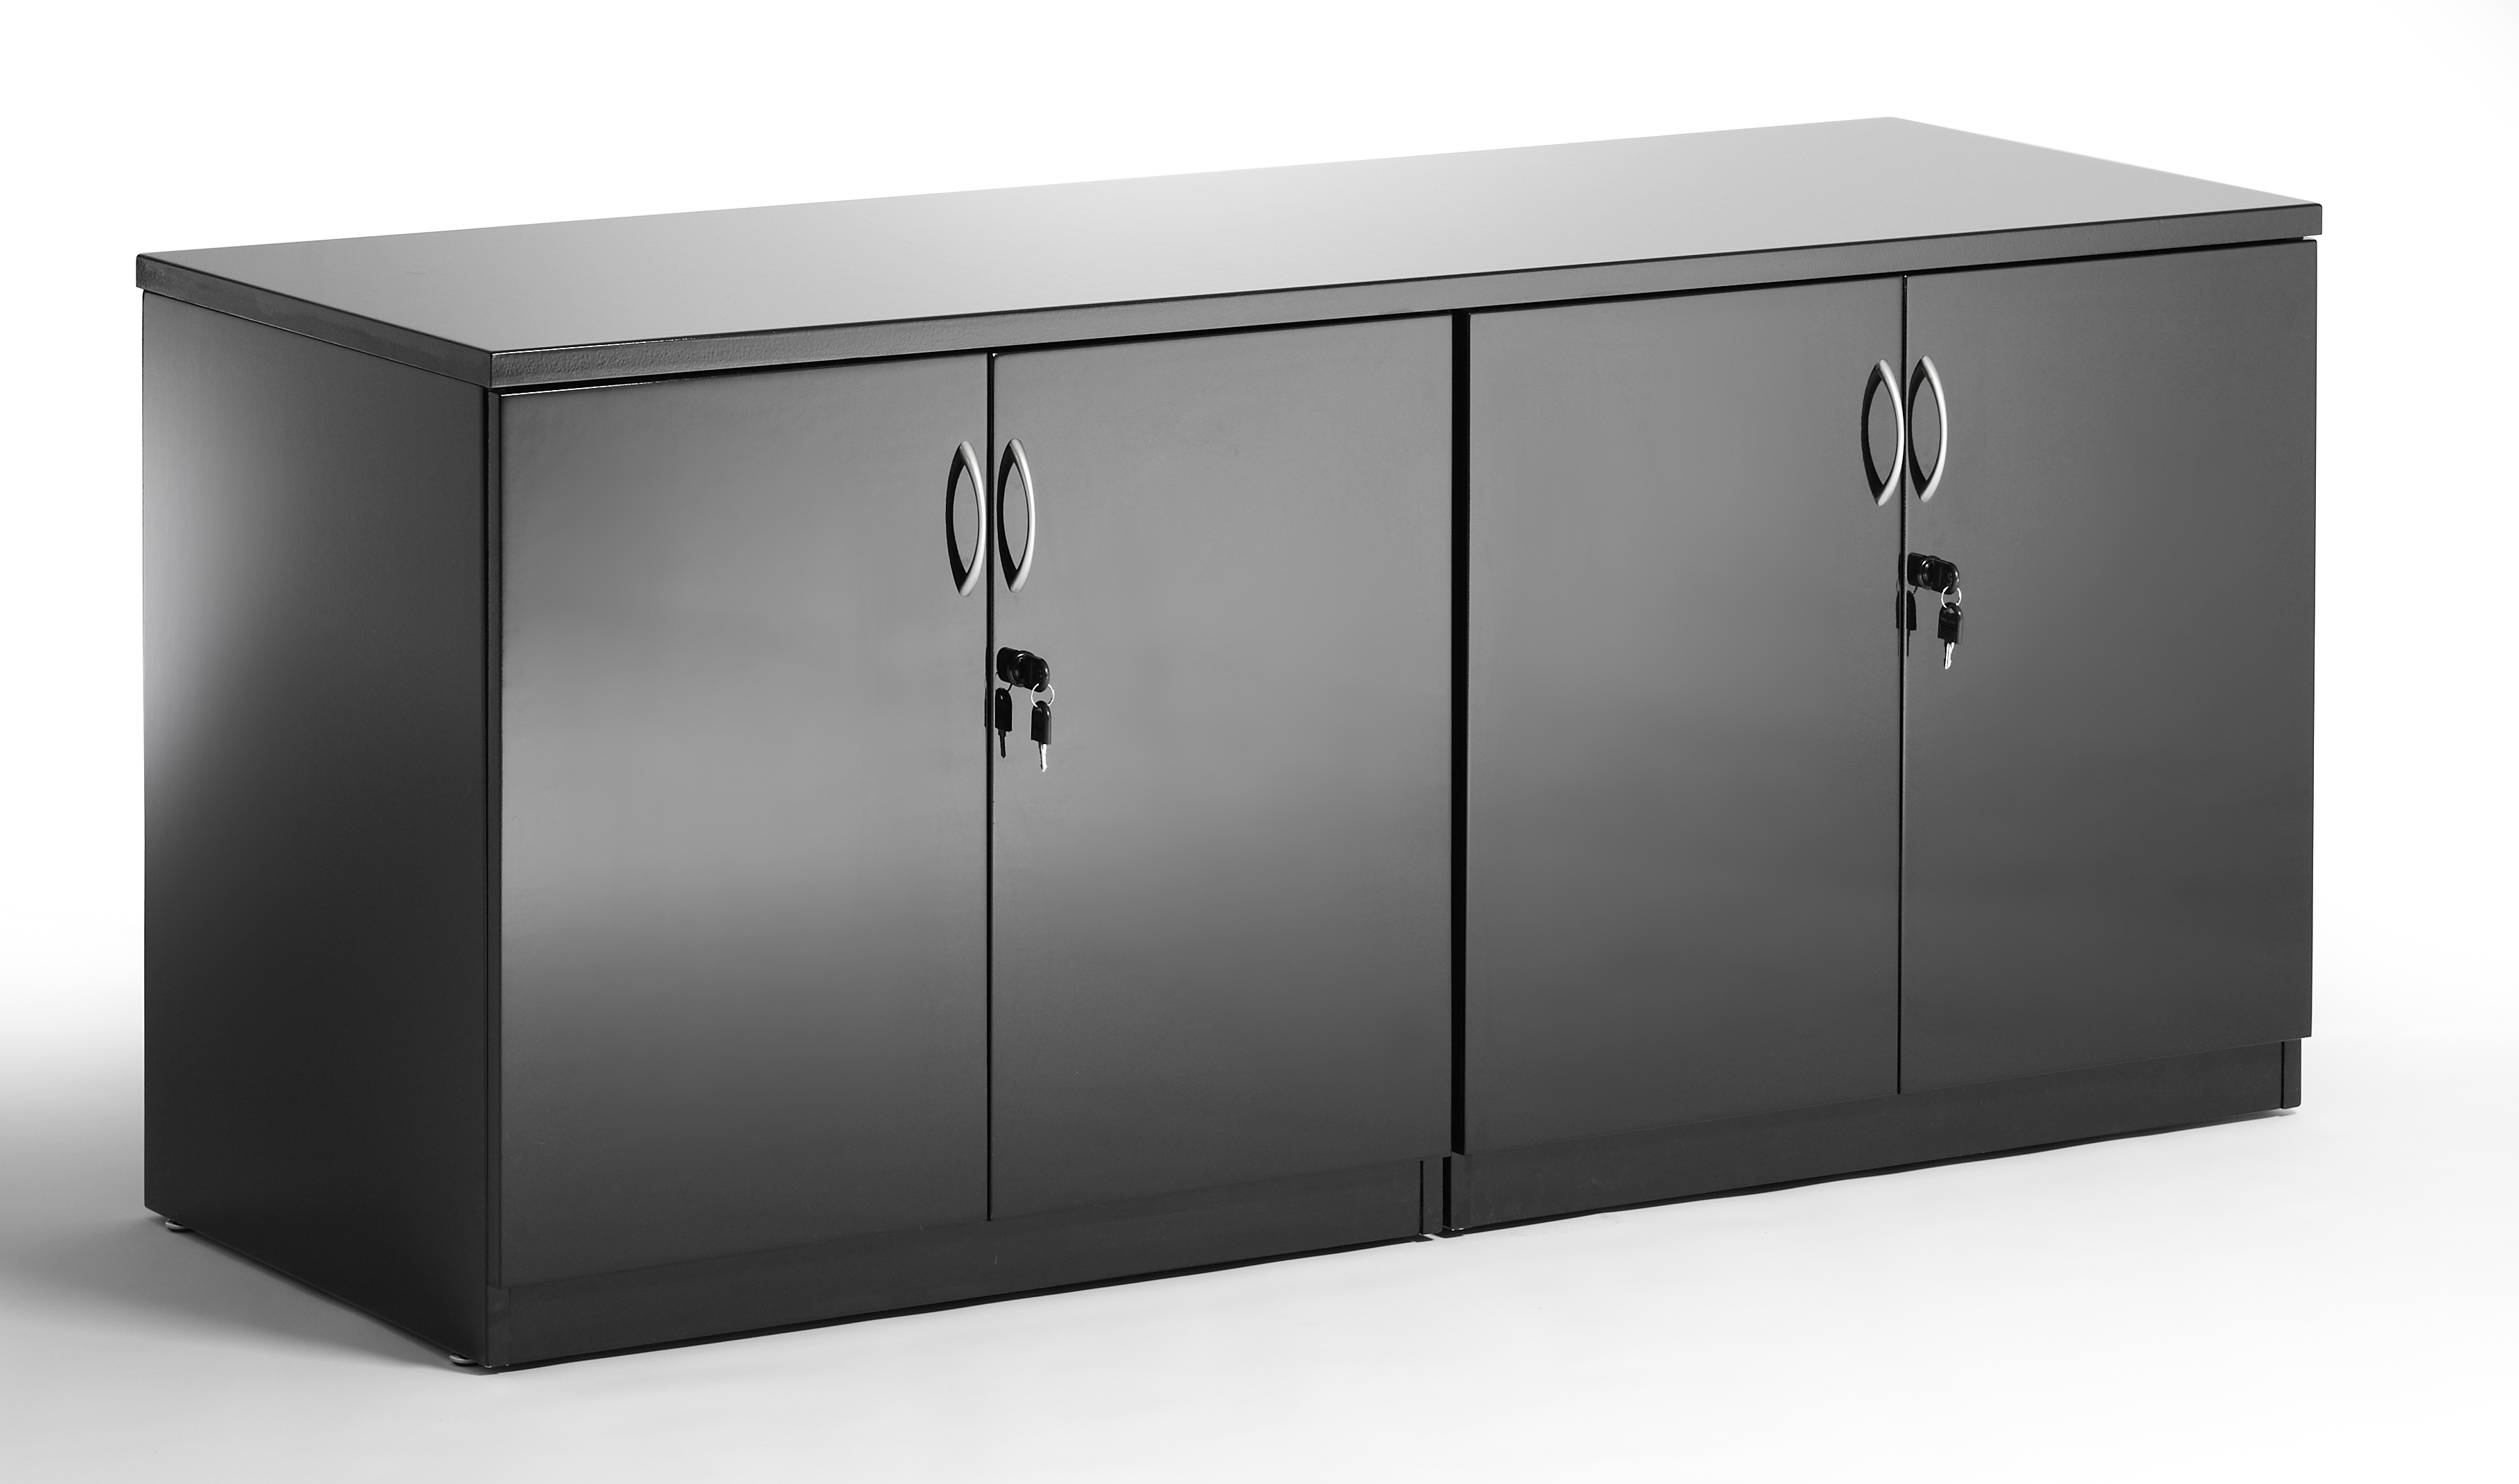 Credenza 1600 cupboard high gloss black